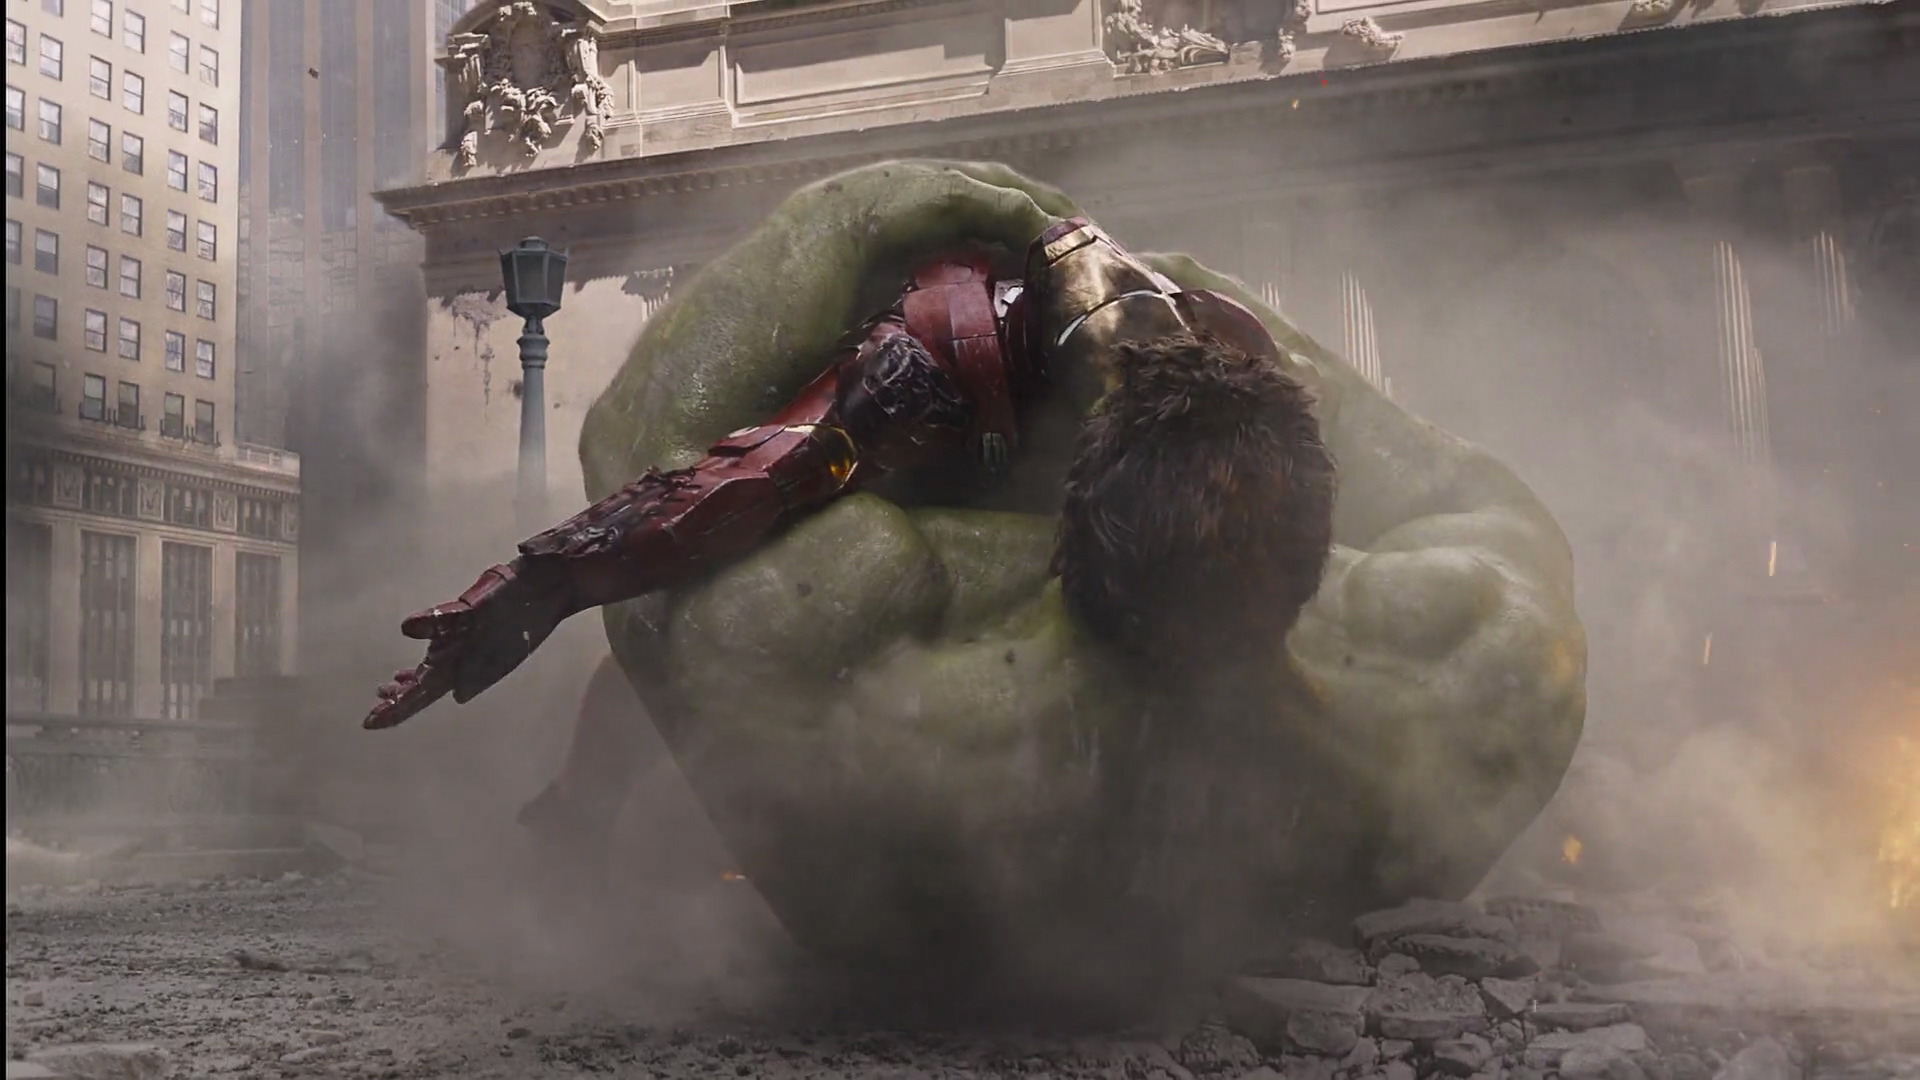 The incredible hulk images hulk in the avengers hd - Incredible hulk wallpaper avengers ...